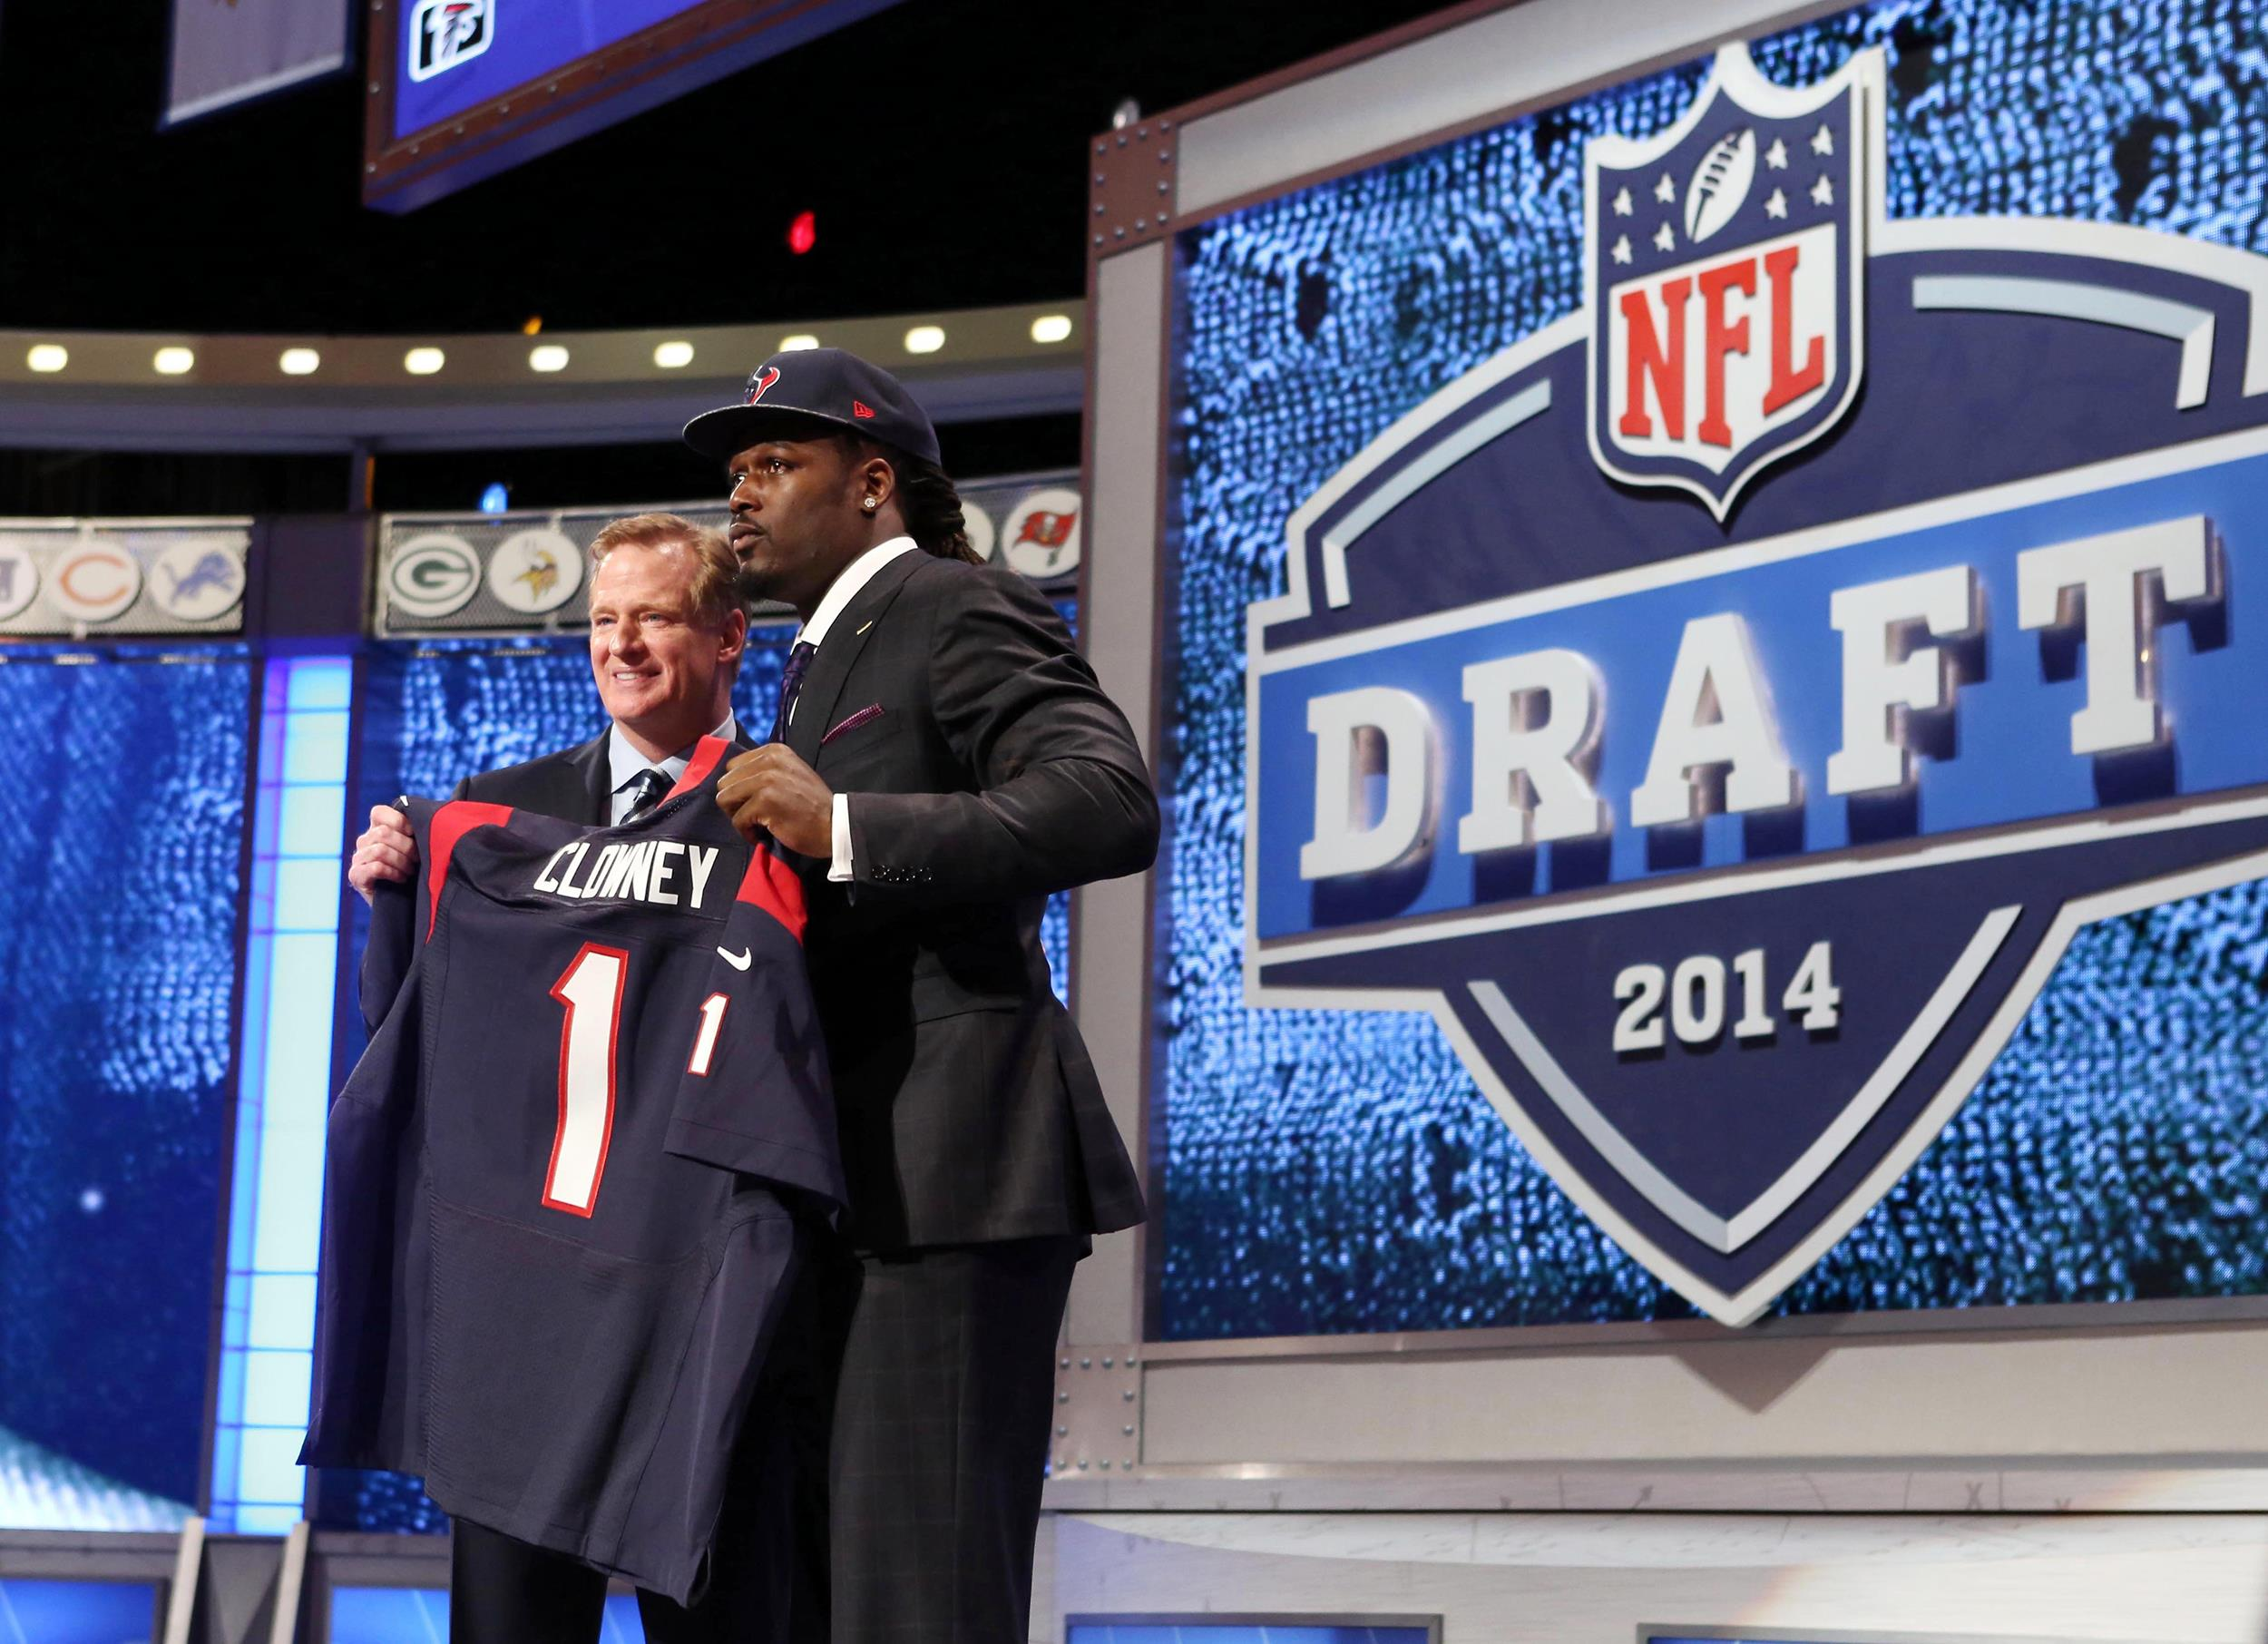 Image: Jadeveon Clowney poses with commissioner Roger Goodell after being selected as the number one overall pick in the first round of the 2014 NFL Draft